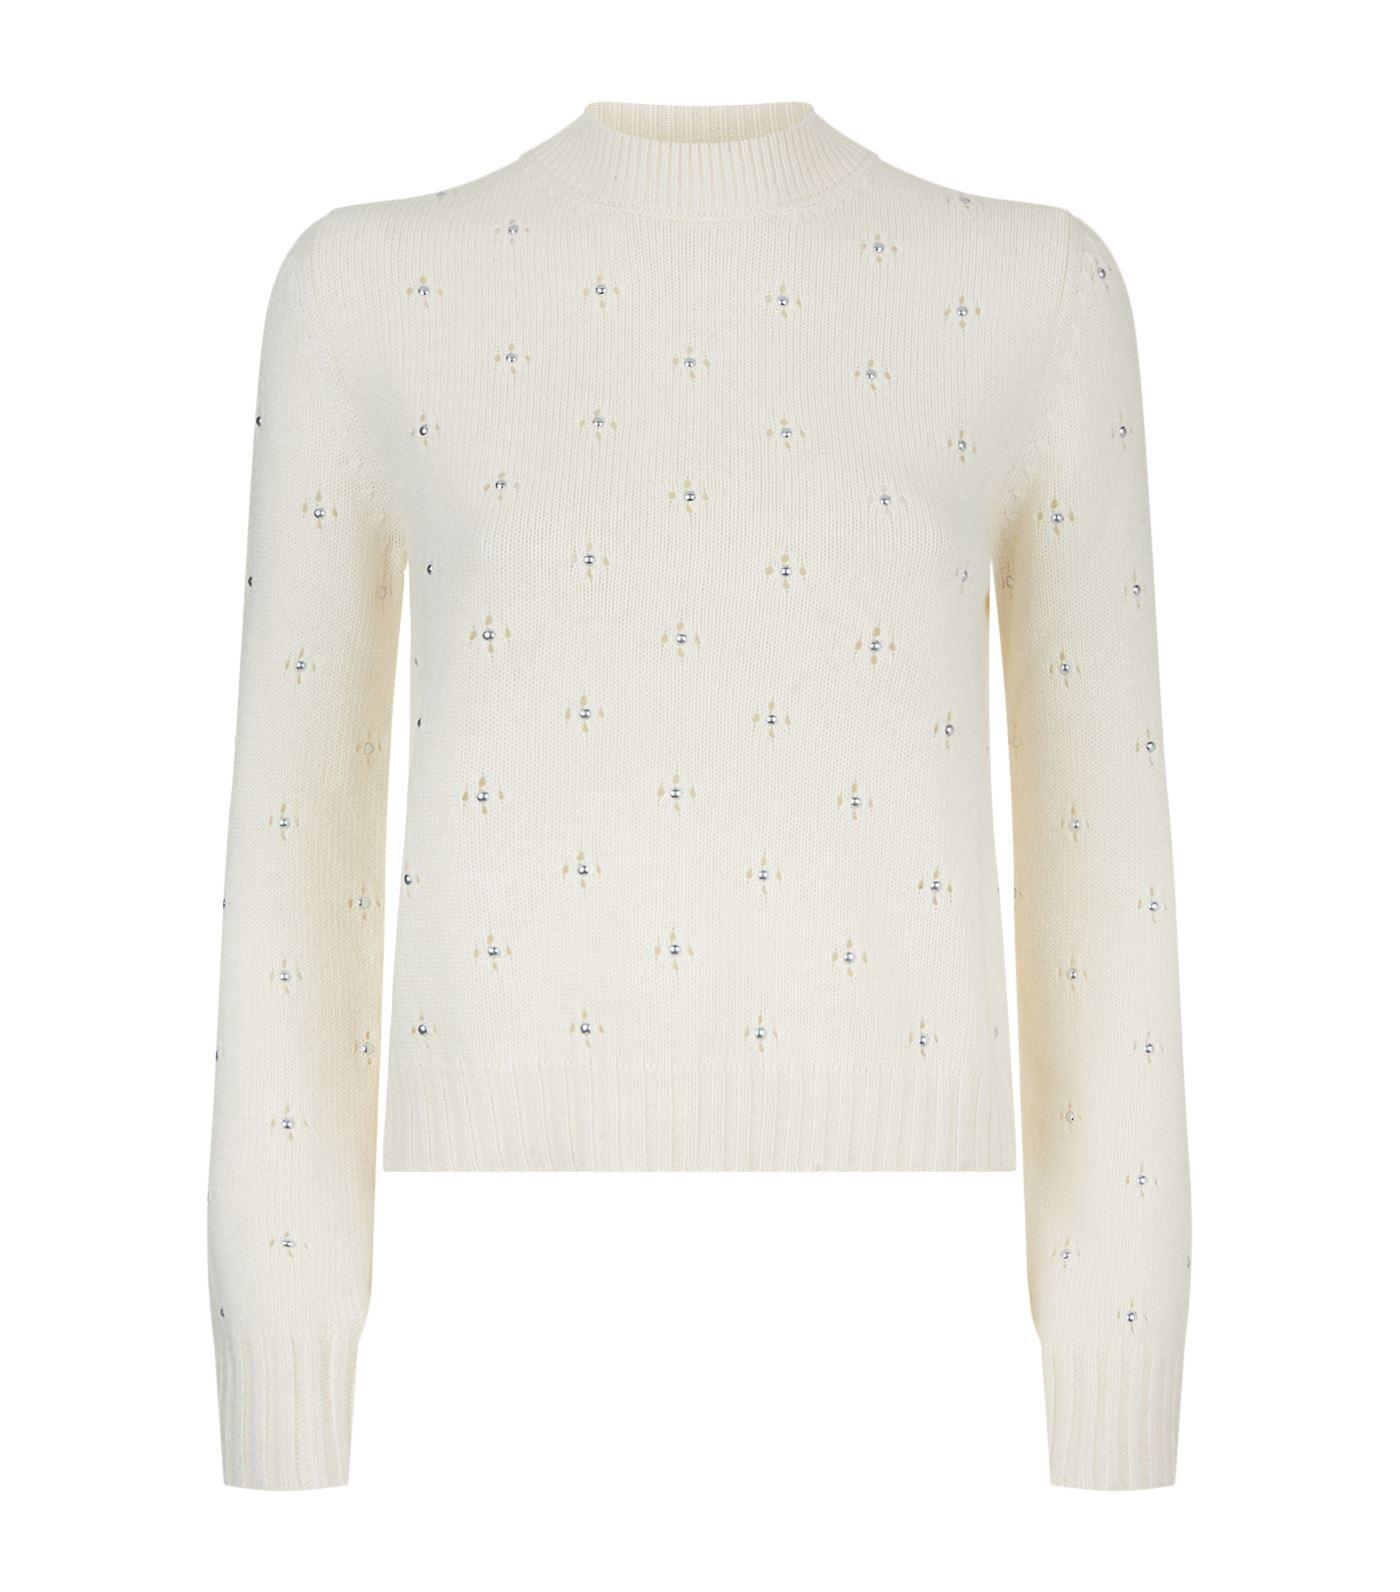 Red valentino Stud Embellished Sweater in White | Lyst